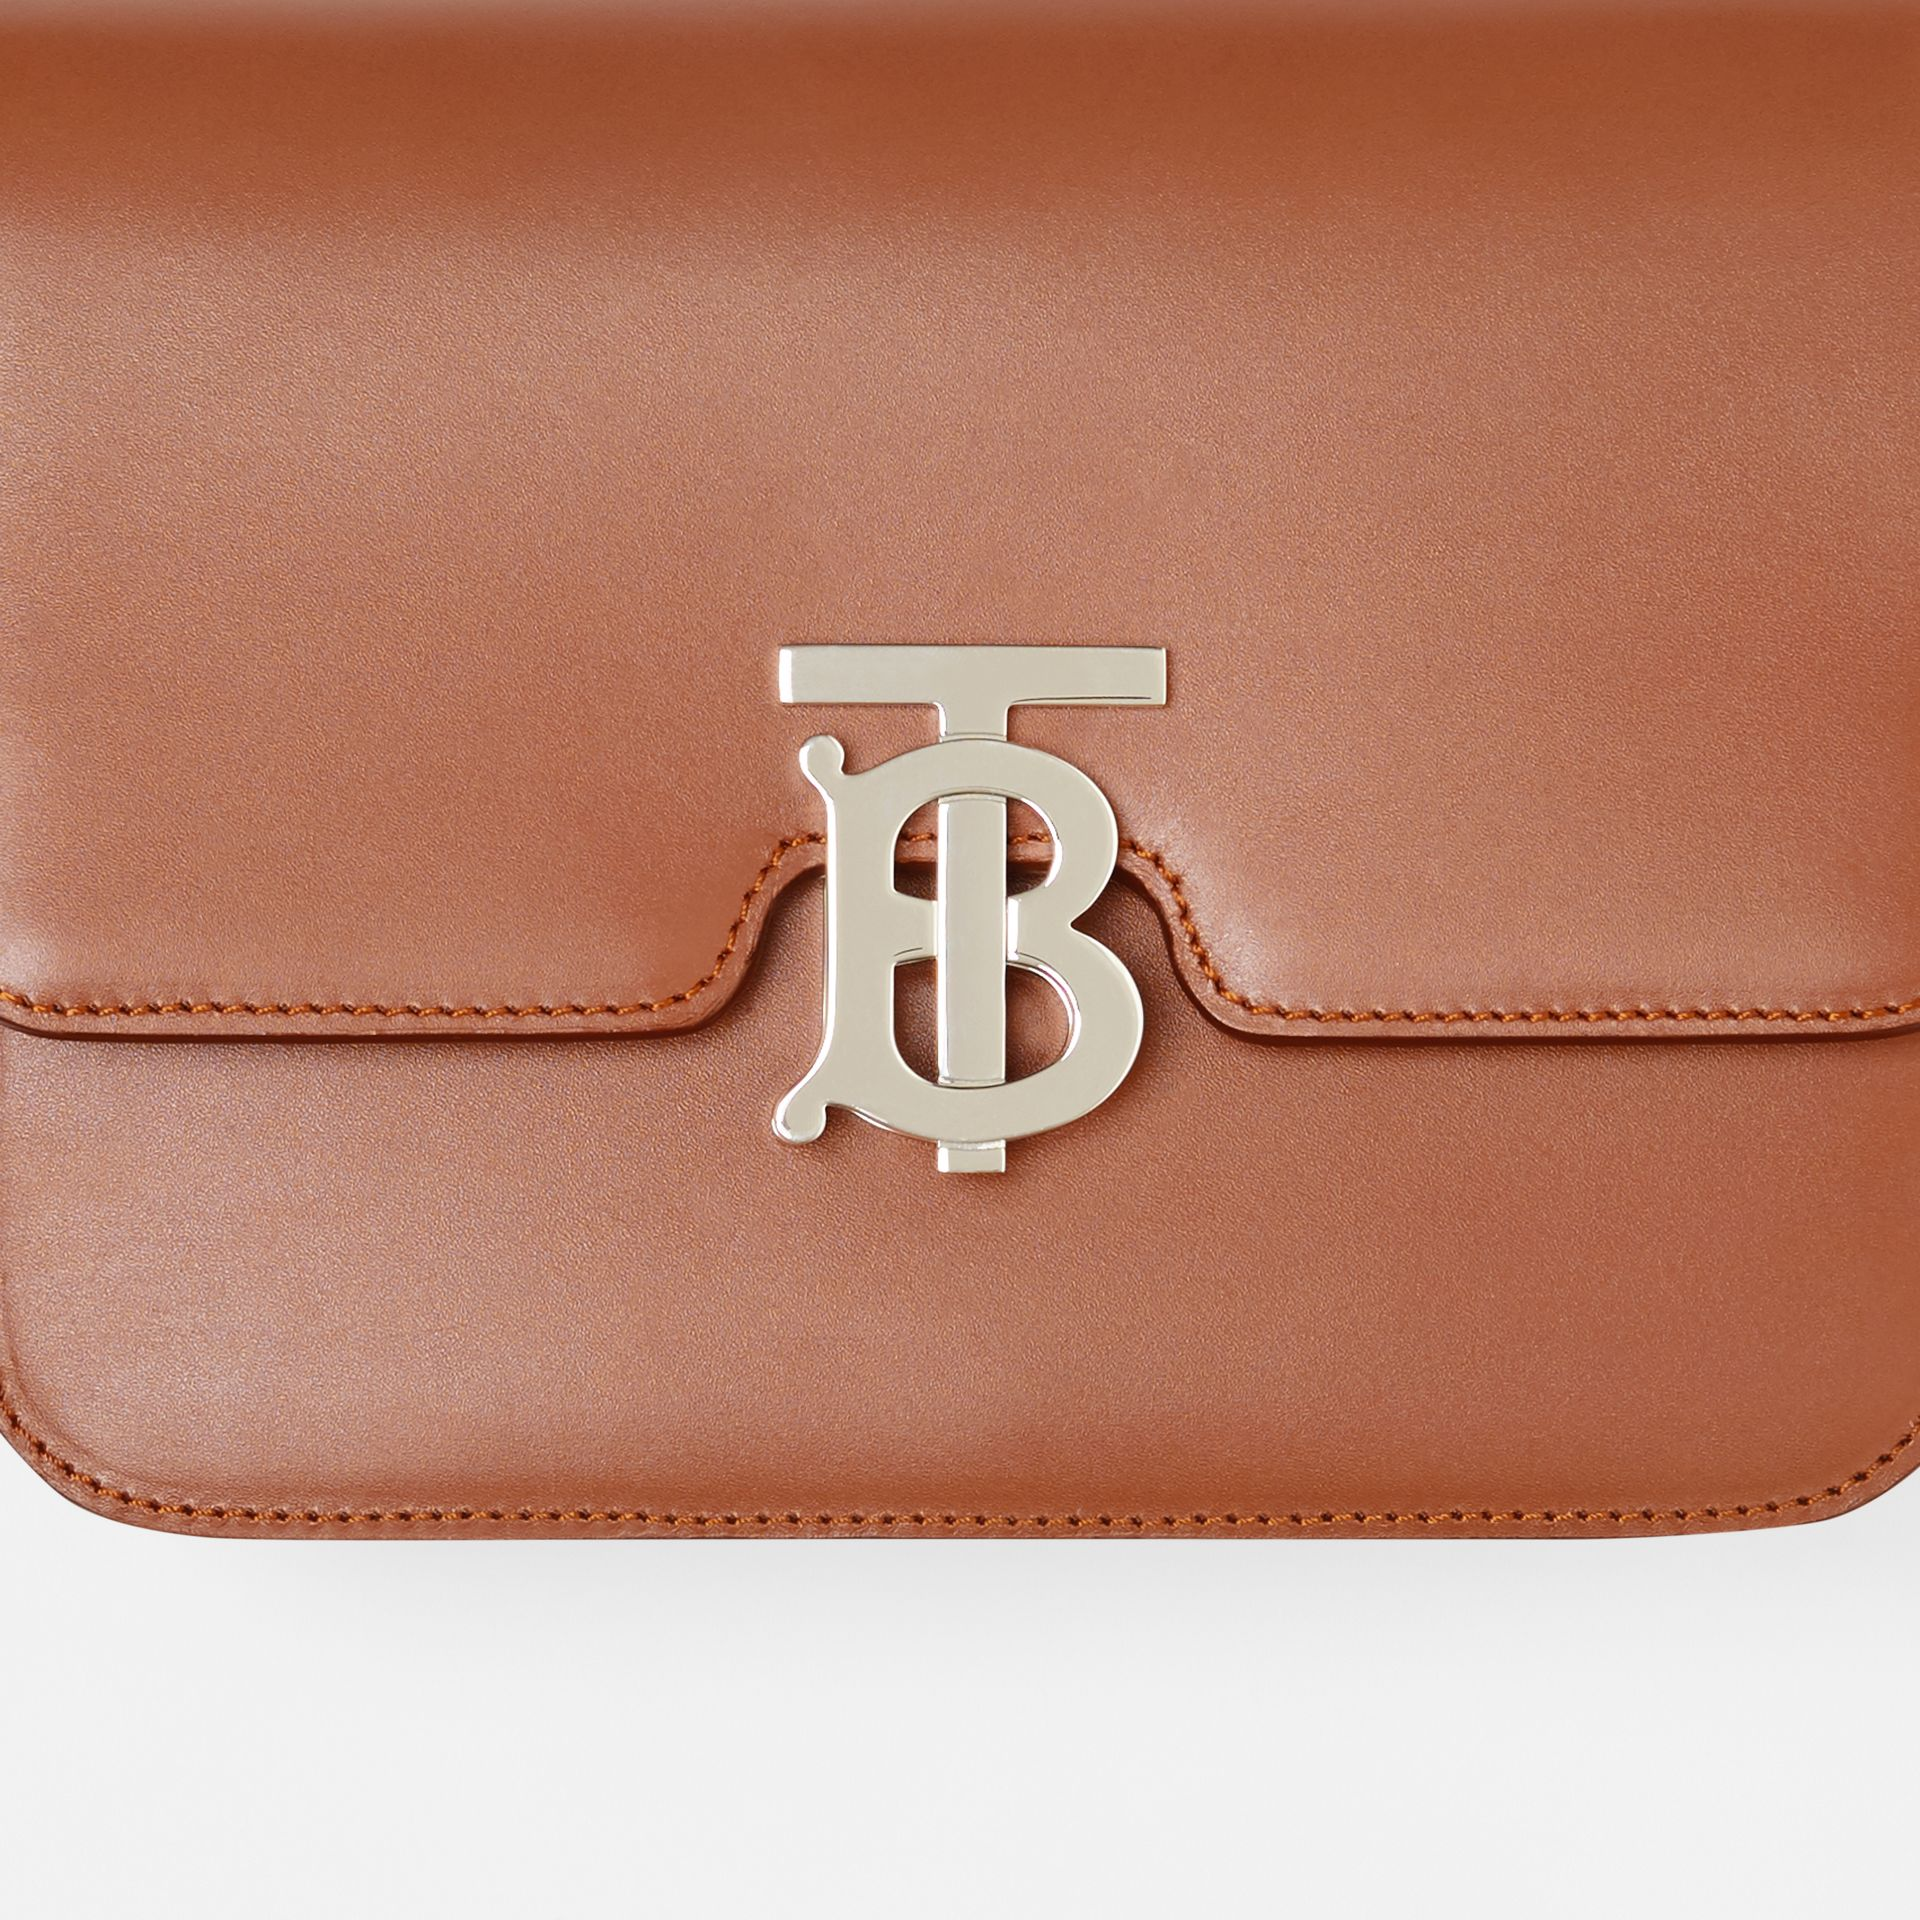 Small Leather TB Bag in Malt Brown - Women | Burberry Canada - gallery image 1